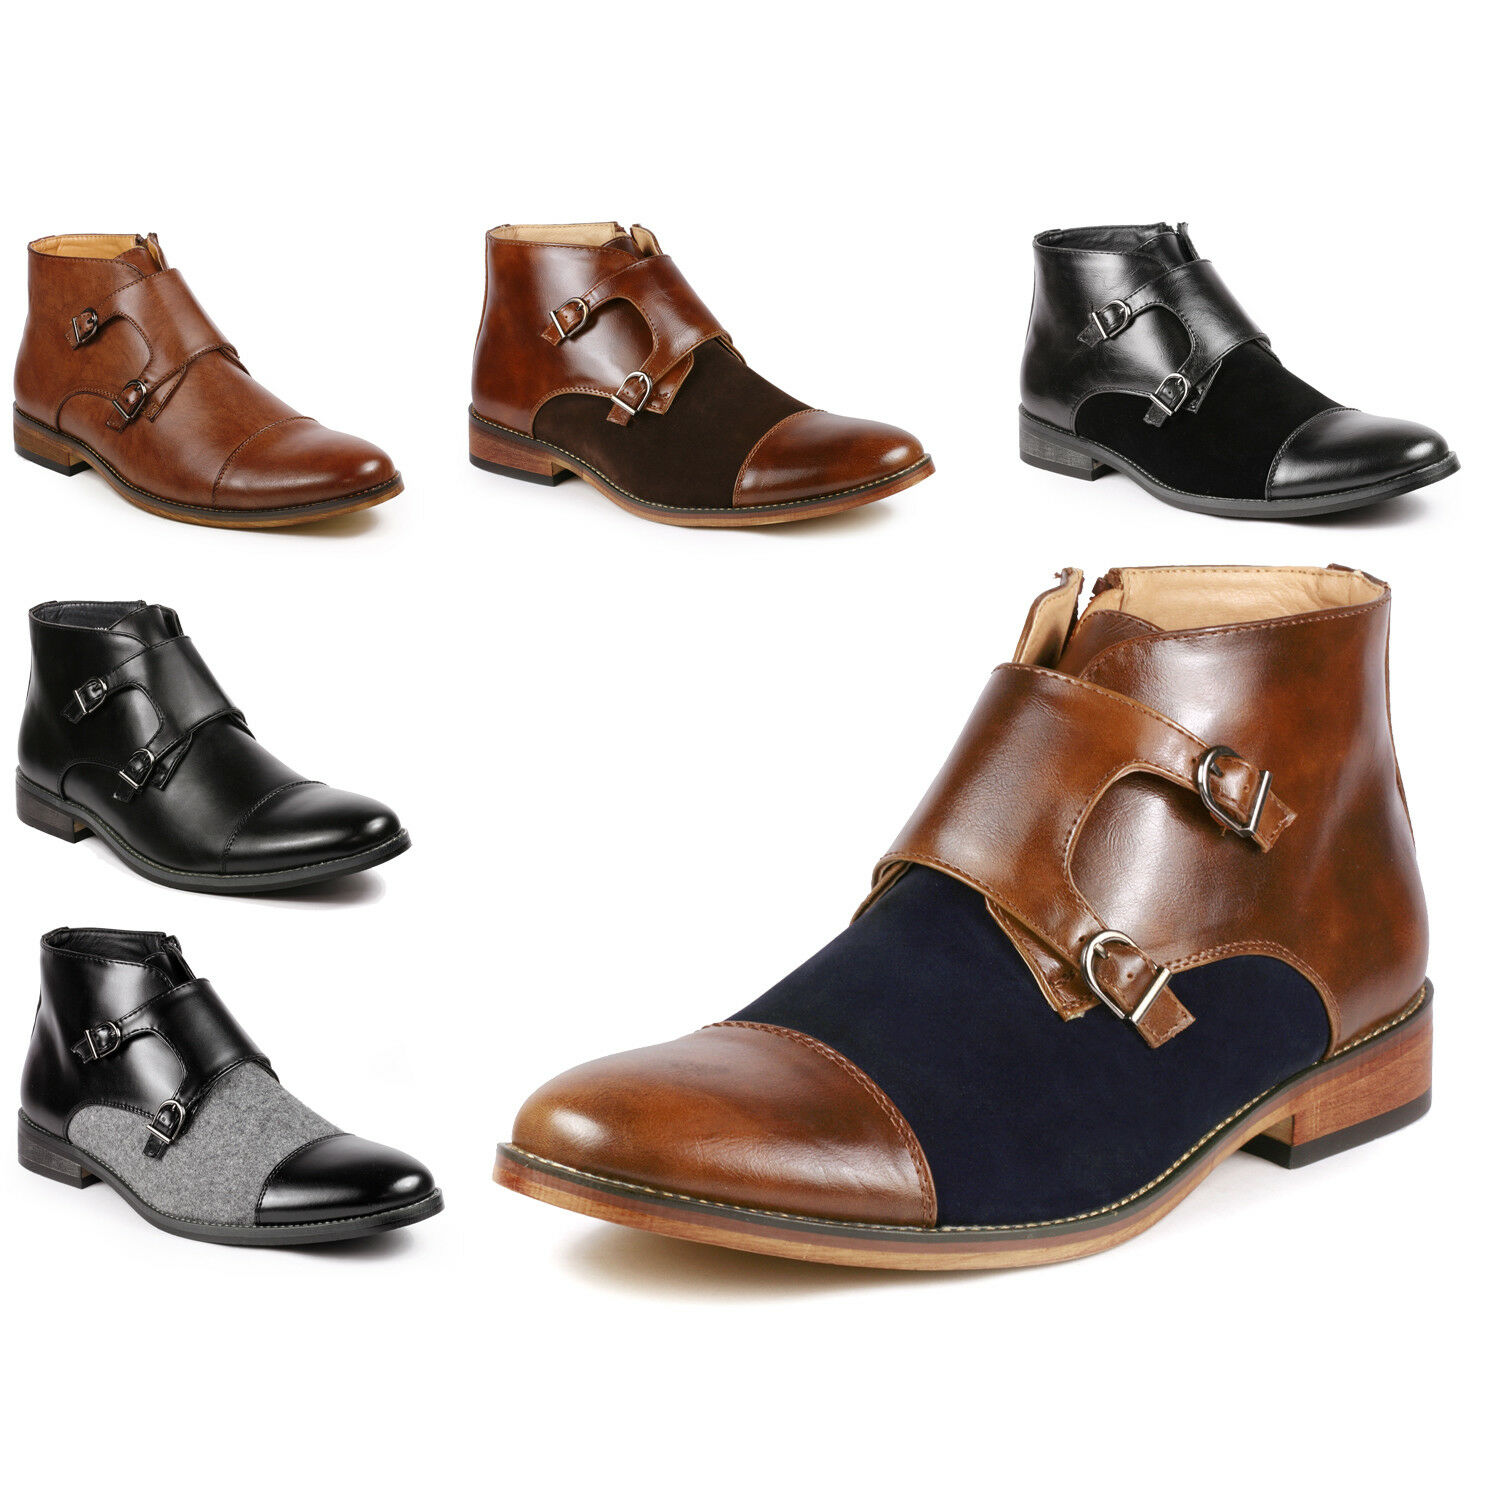 Metrocharm MC117 Men's Cap Toe Double Monk Strap Formal Dress Casual Ankle Boots